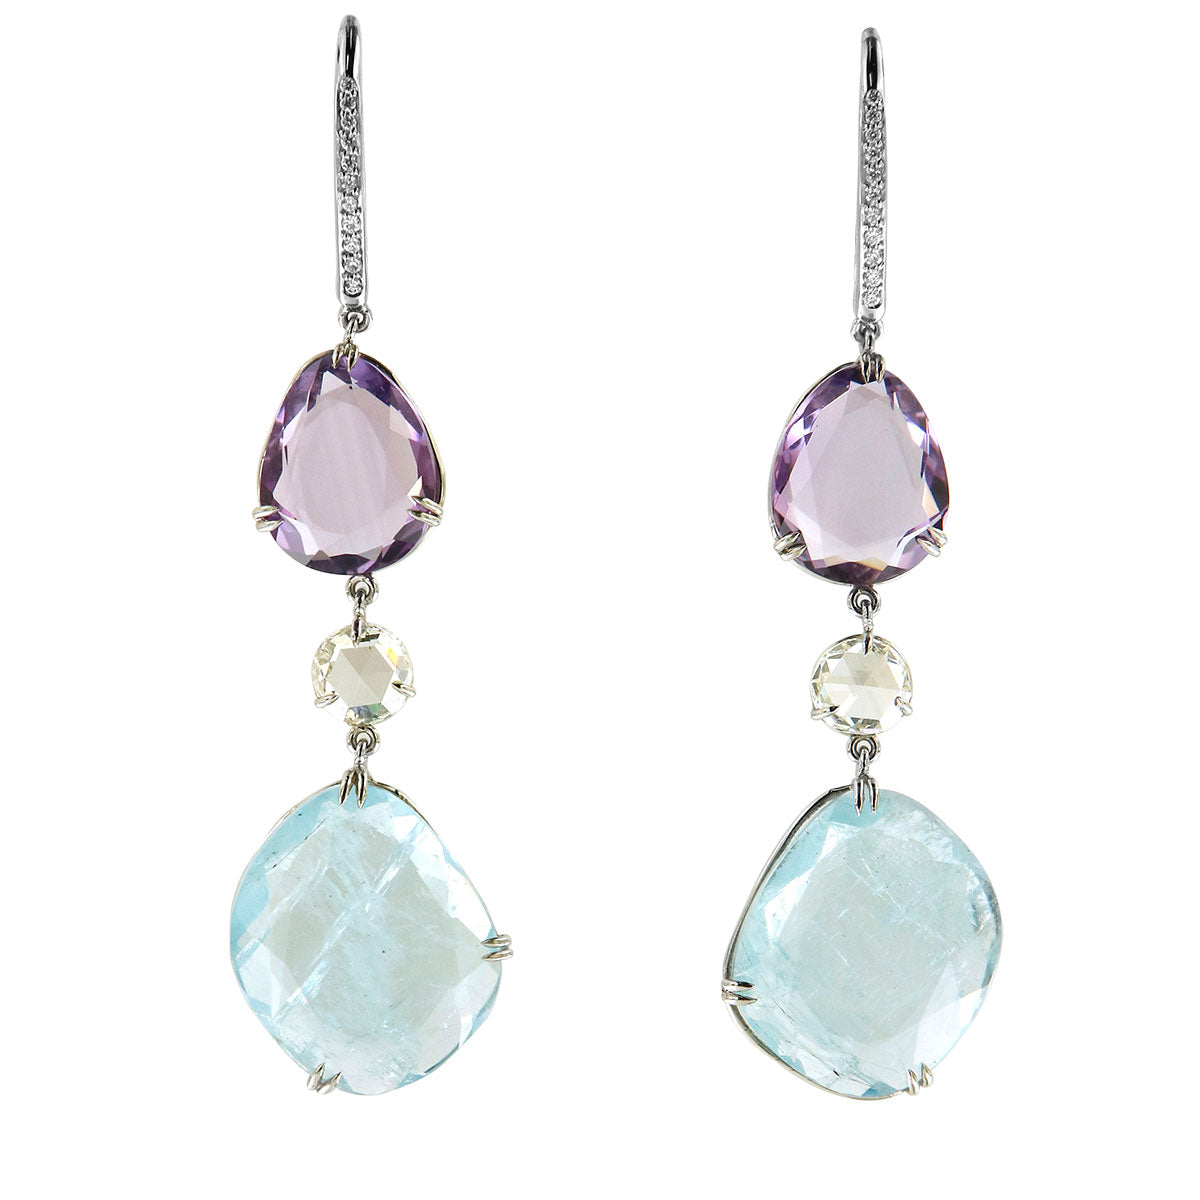 Earrings Platinum with Aquamarines, Amethysts and White Diamonds